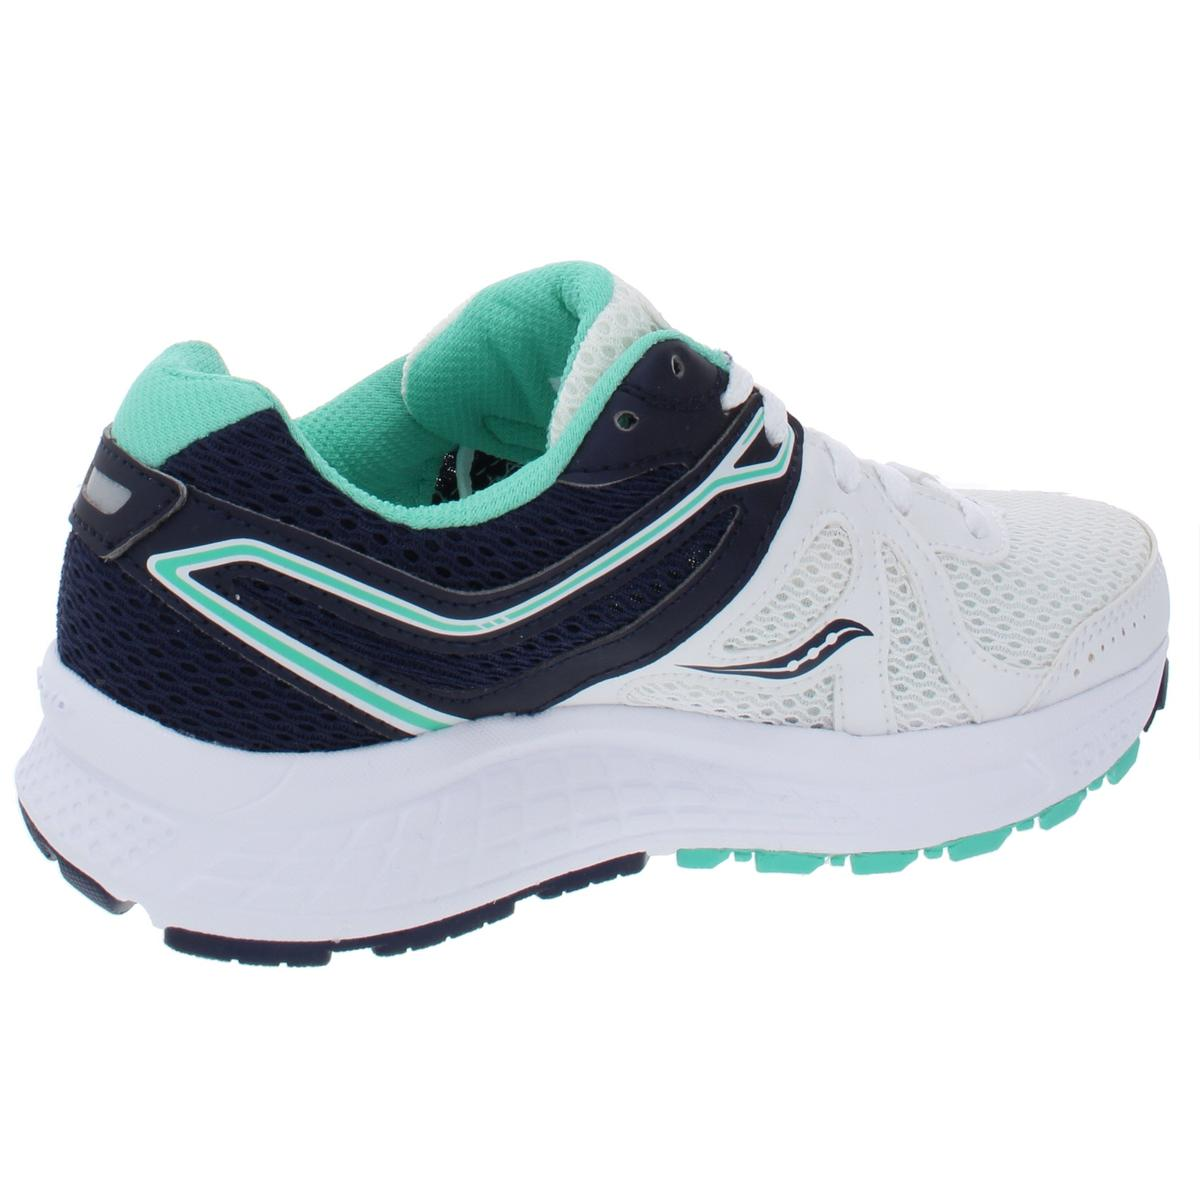 Saucony Womens Grid Cohesion 11 Mesh Low Top Running Shoes Sneakers BHFO 6566